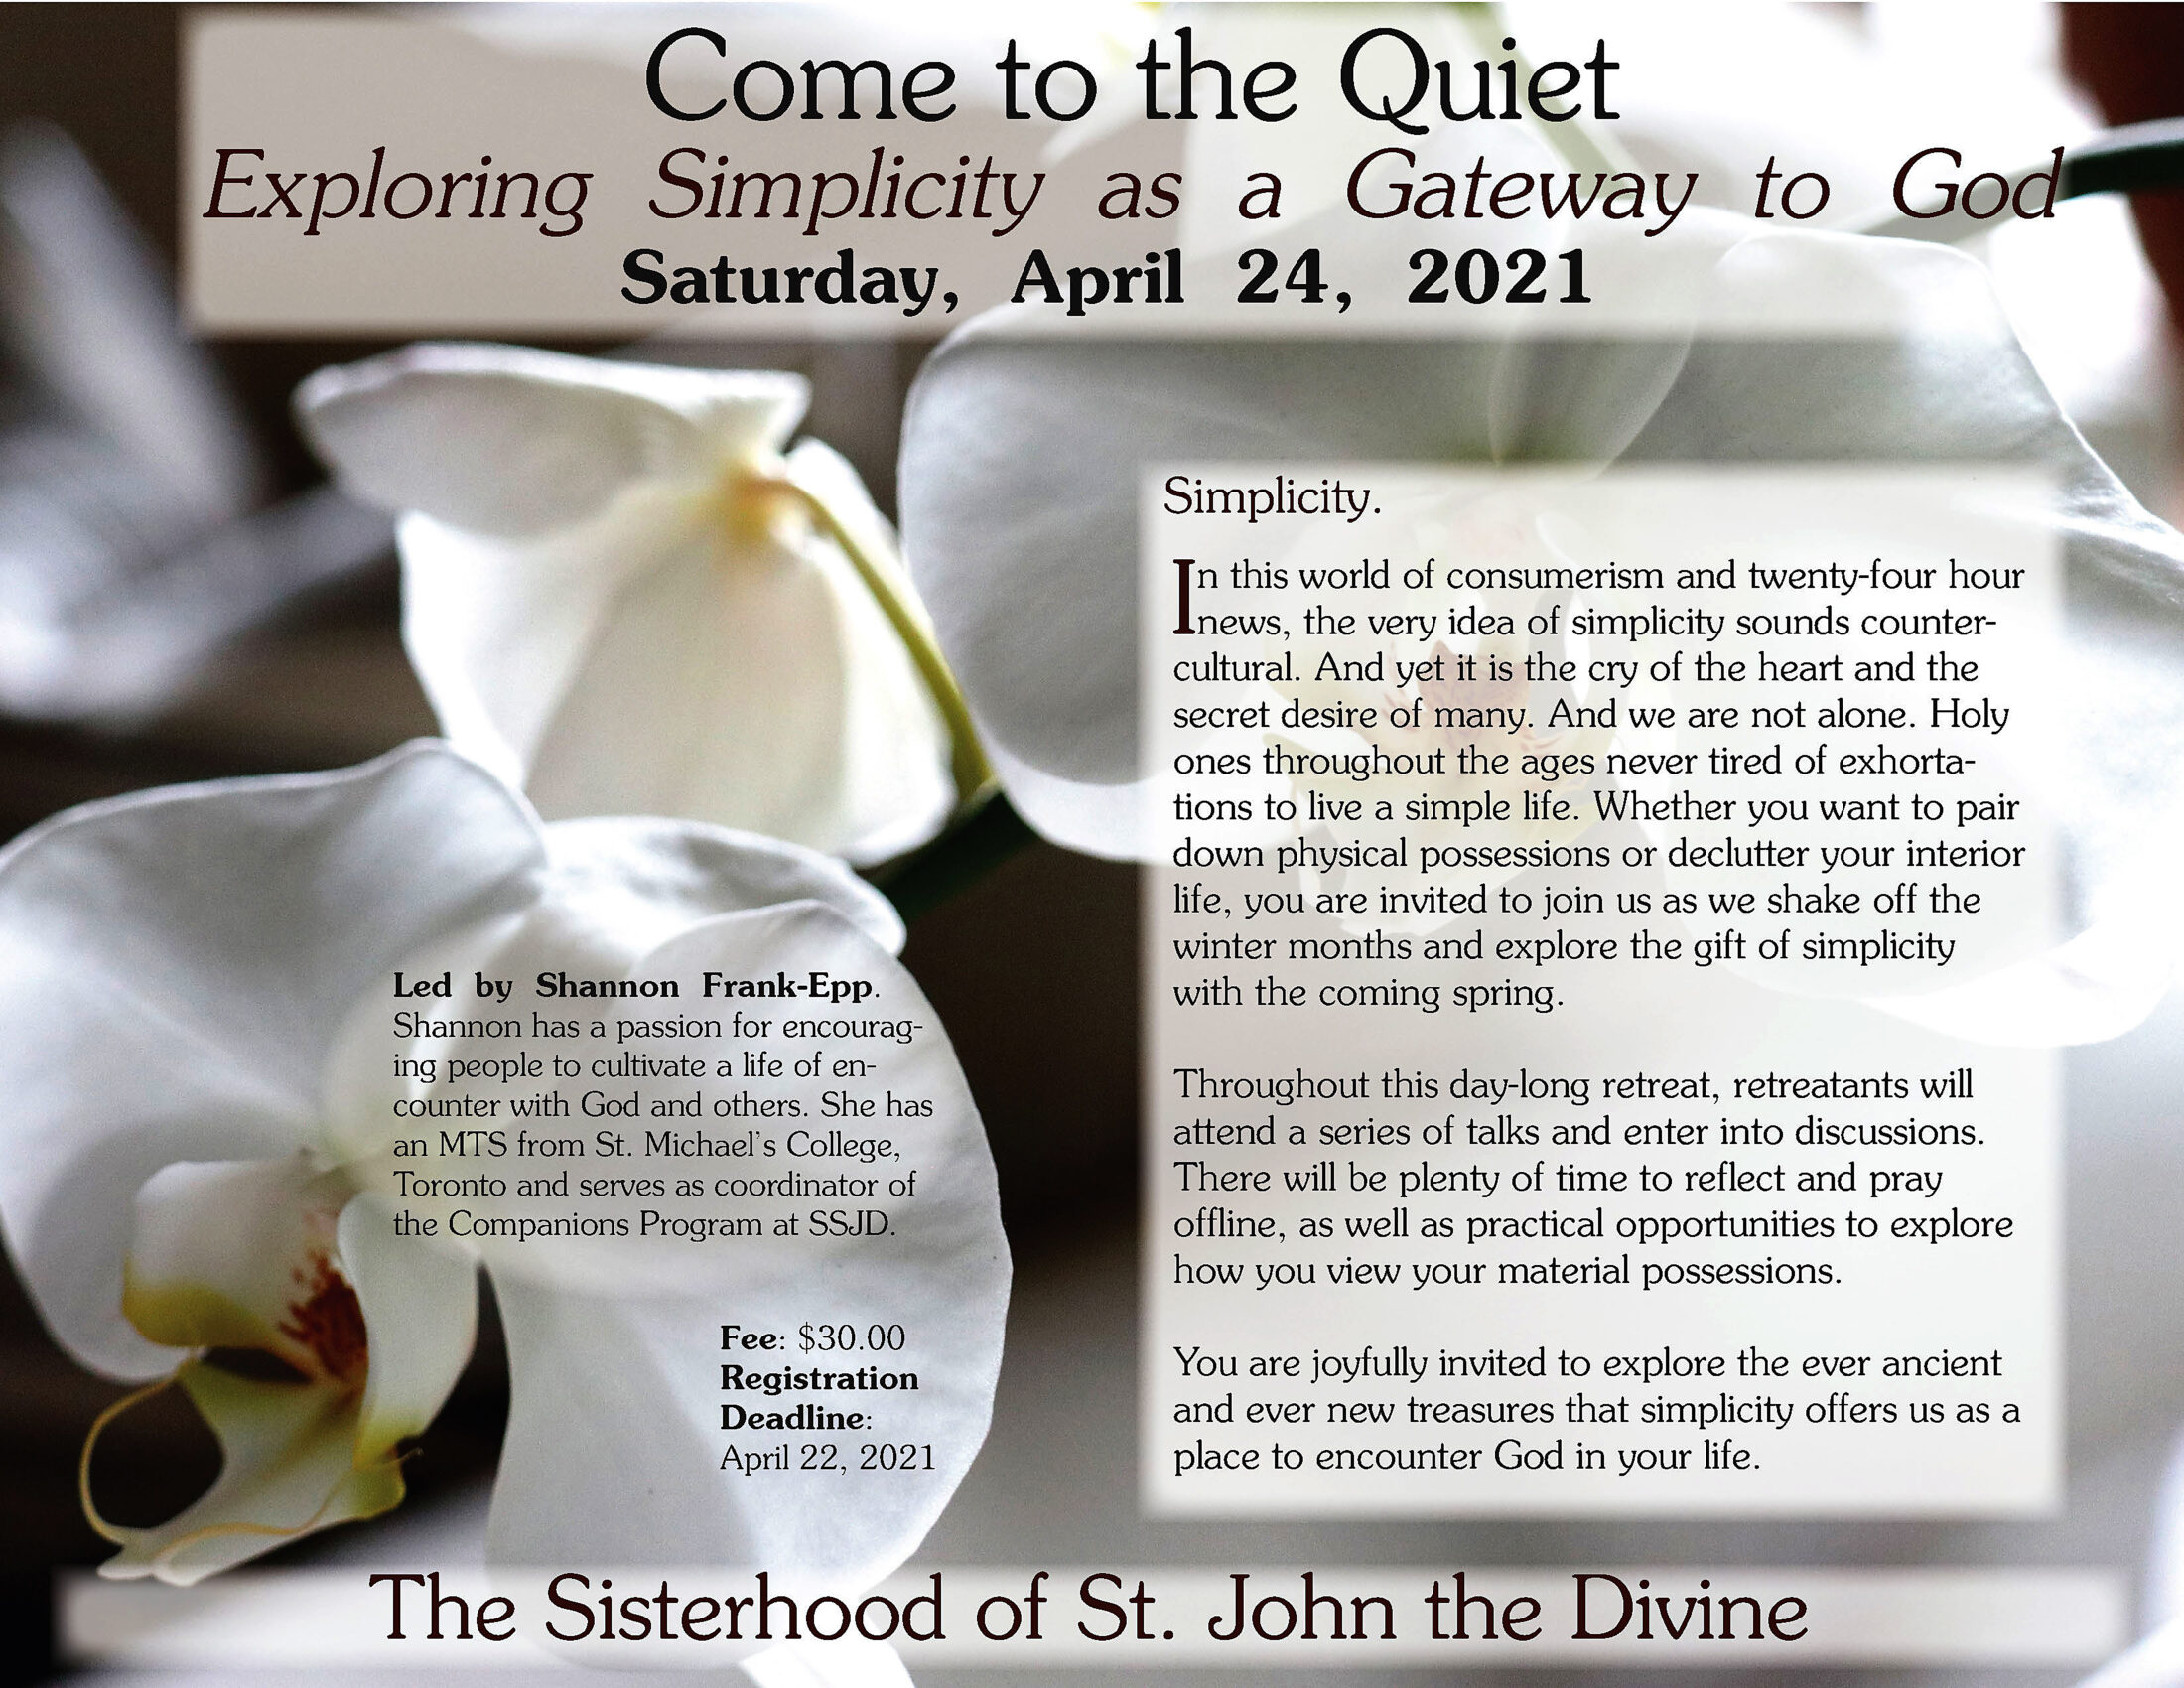 Come to the Quiet: Exploring Simplicity as a Gateway to God